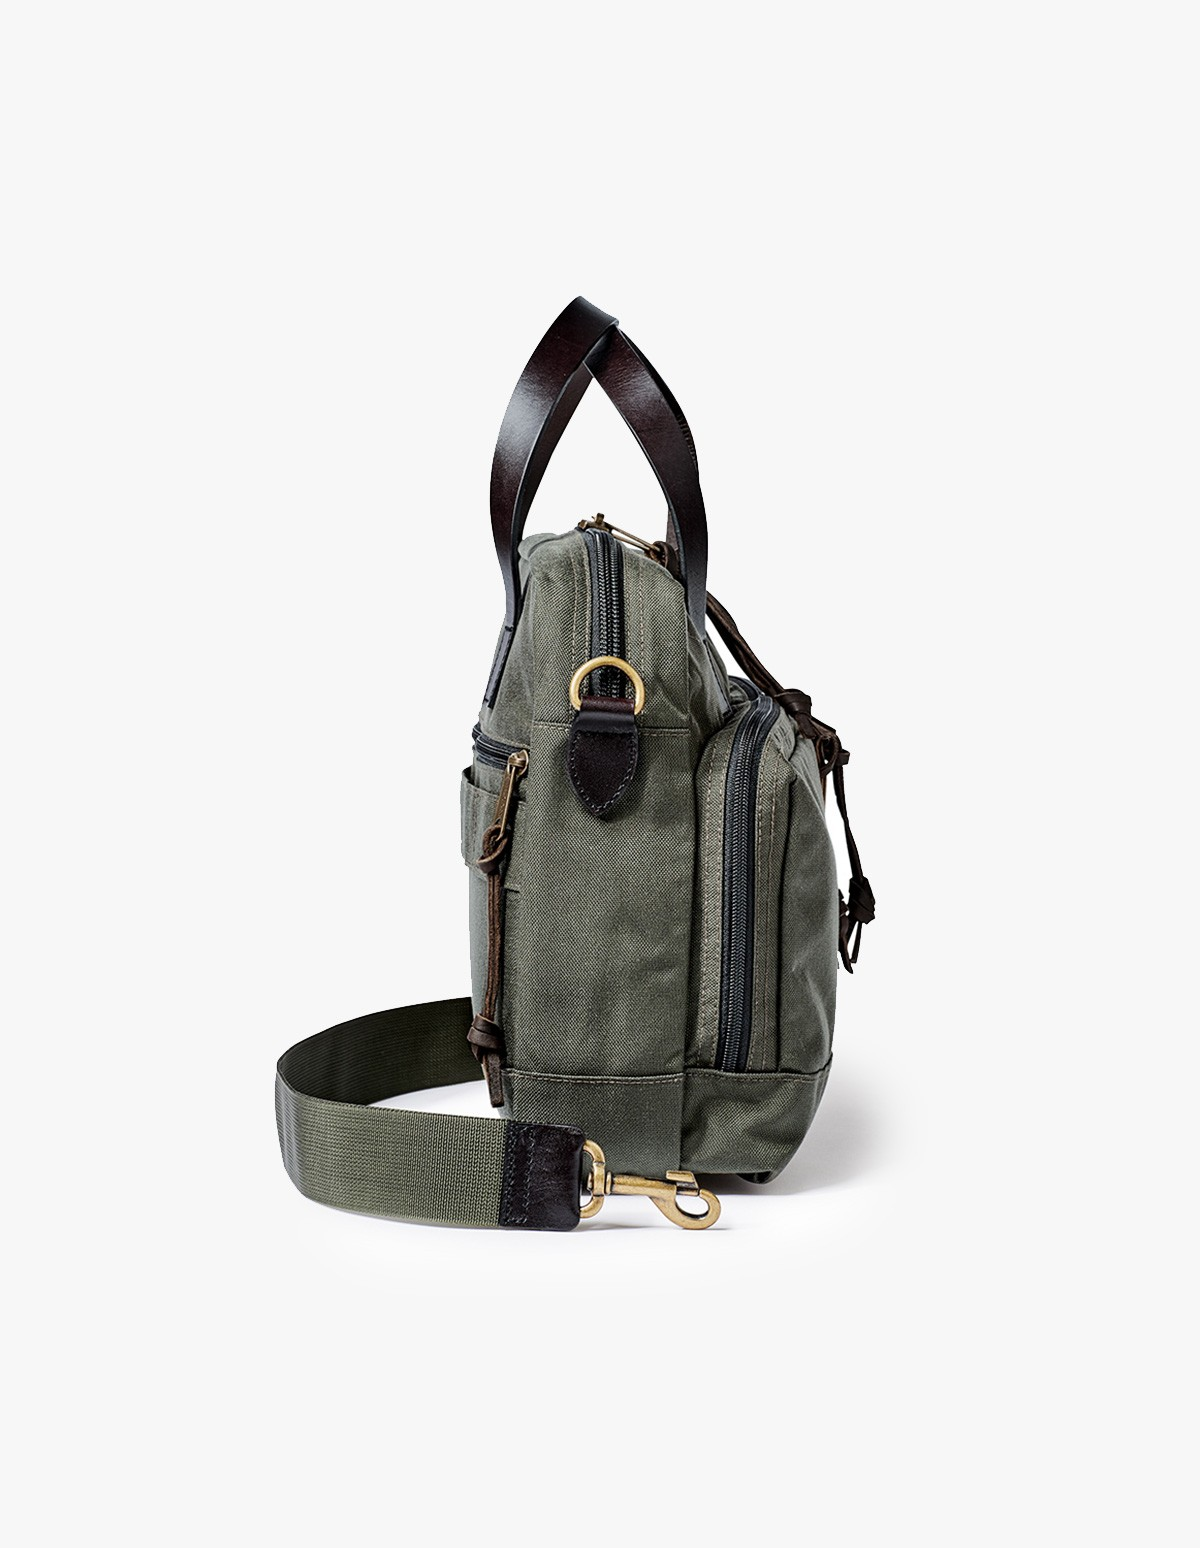 Filson Dryden Briefcase in Otter Green